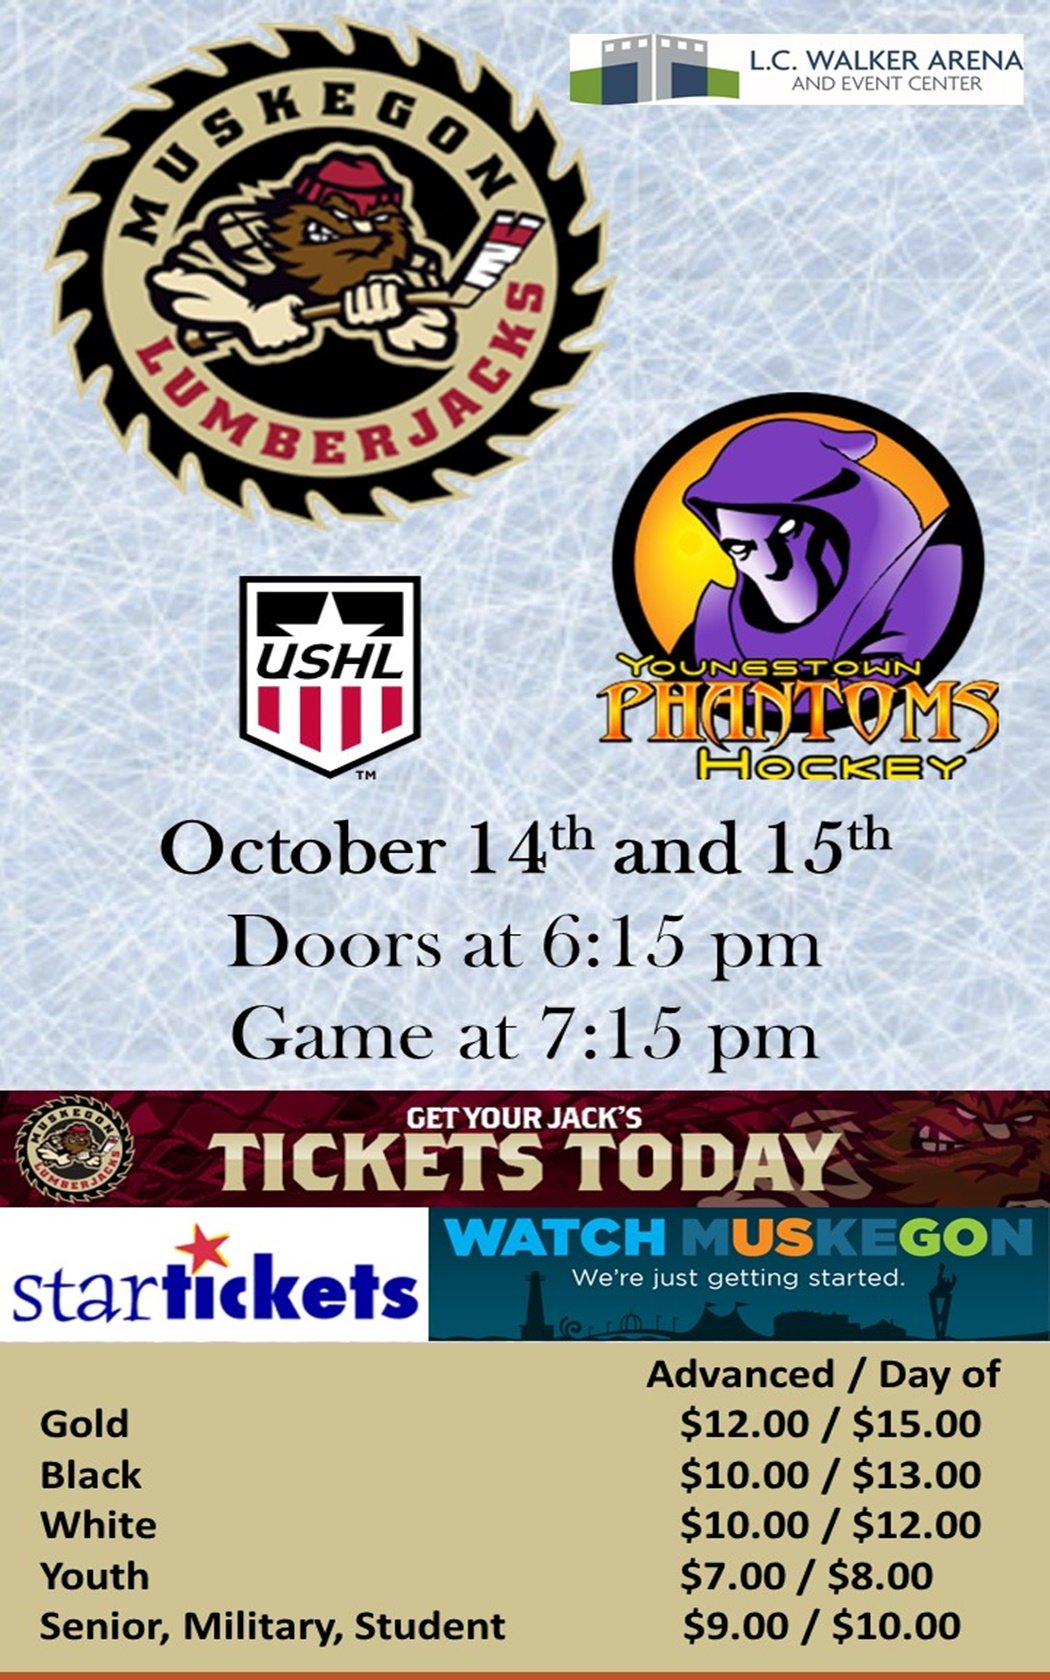 Oct 14,15 – Muskegon Lumberjacks vs Youngstown Phantoms